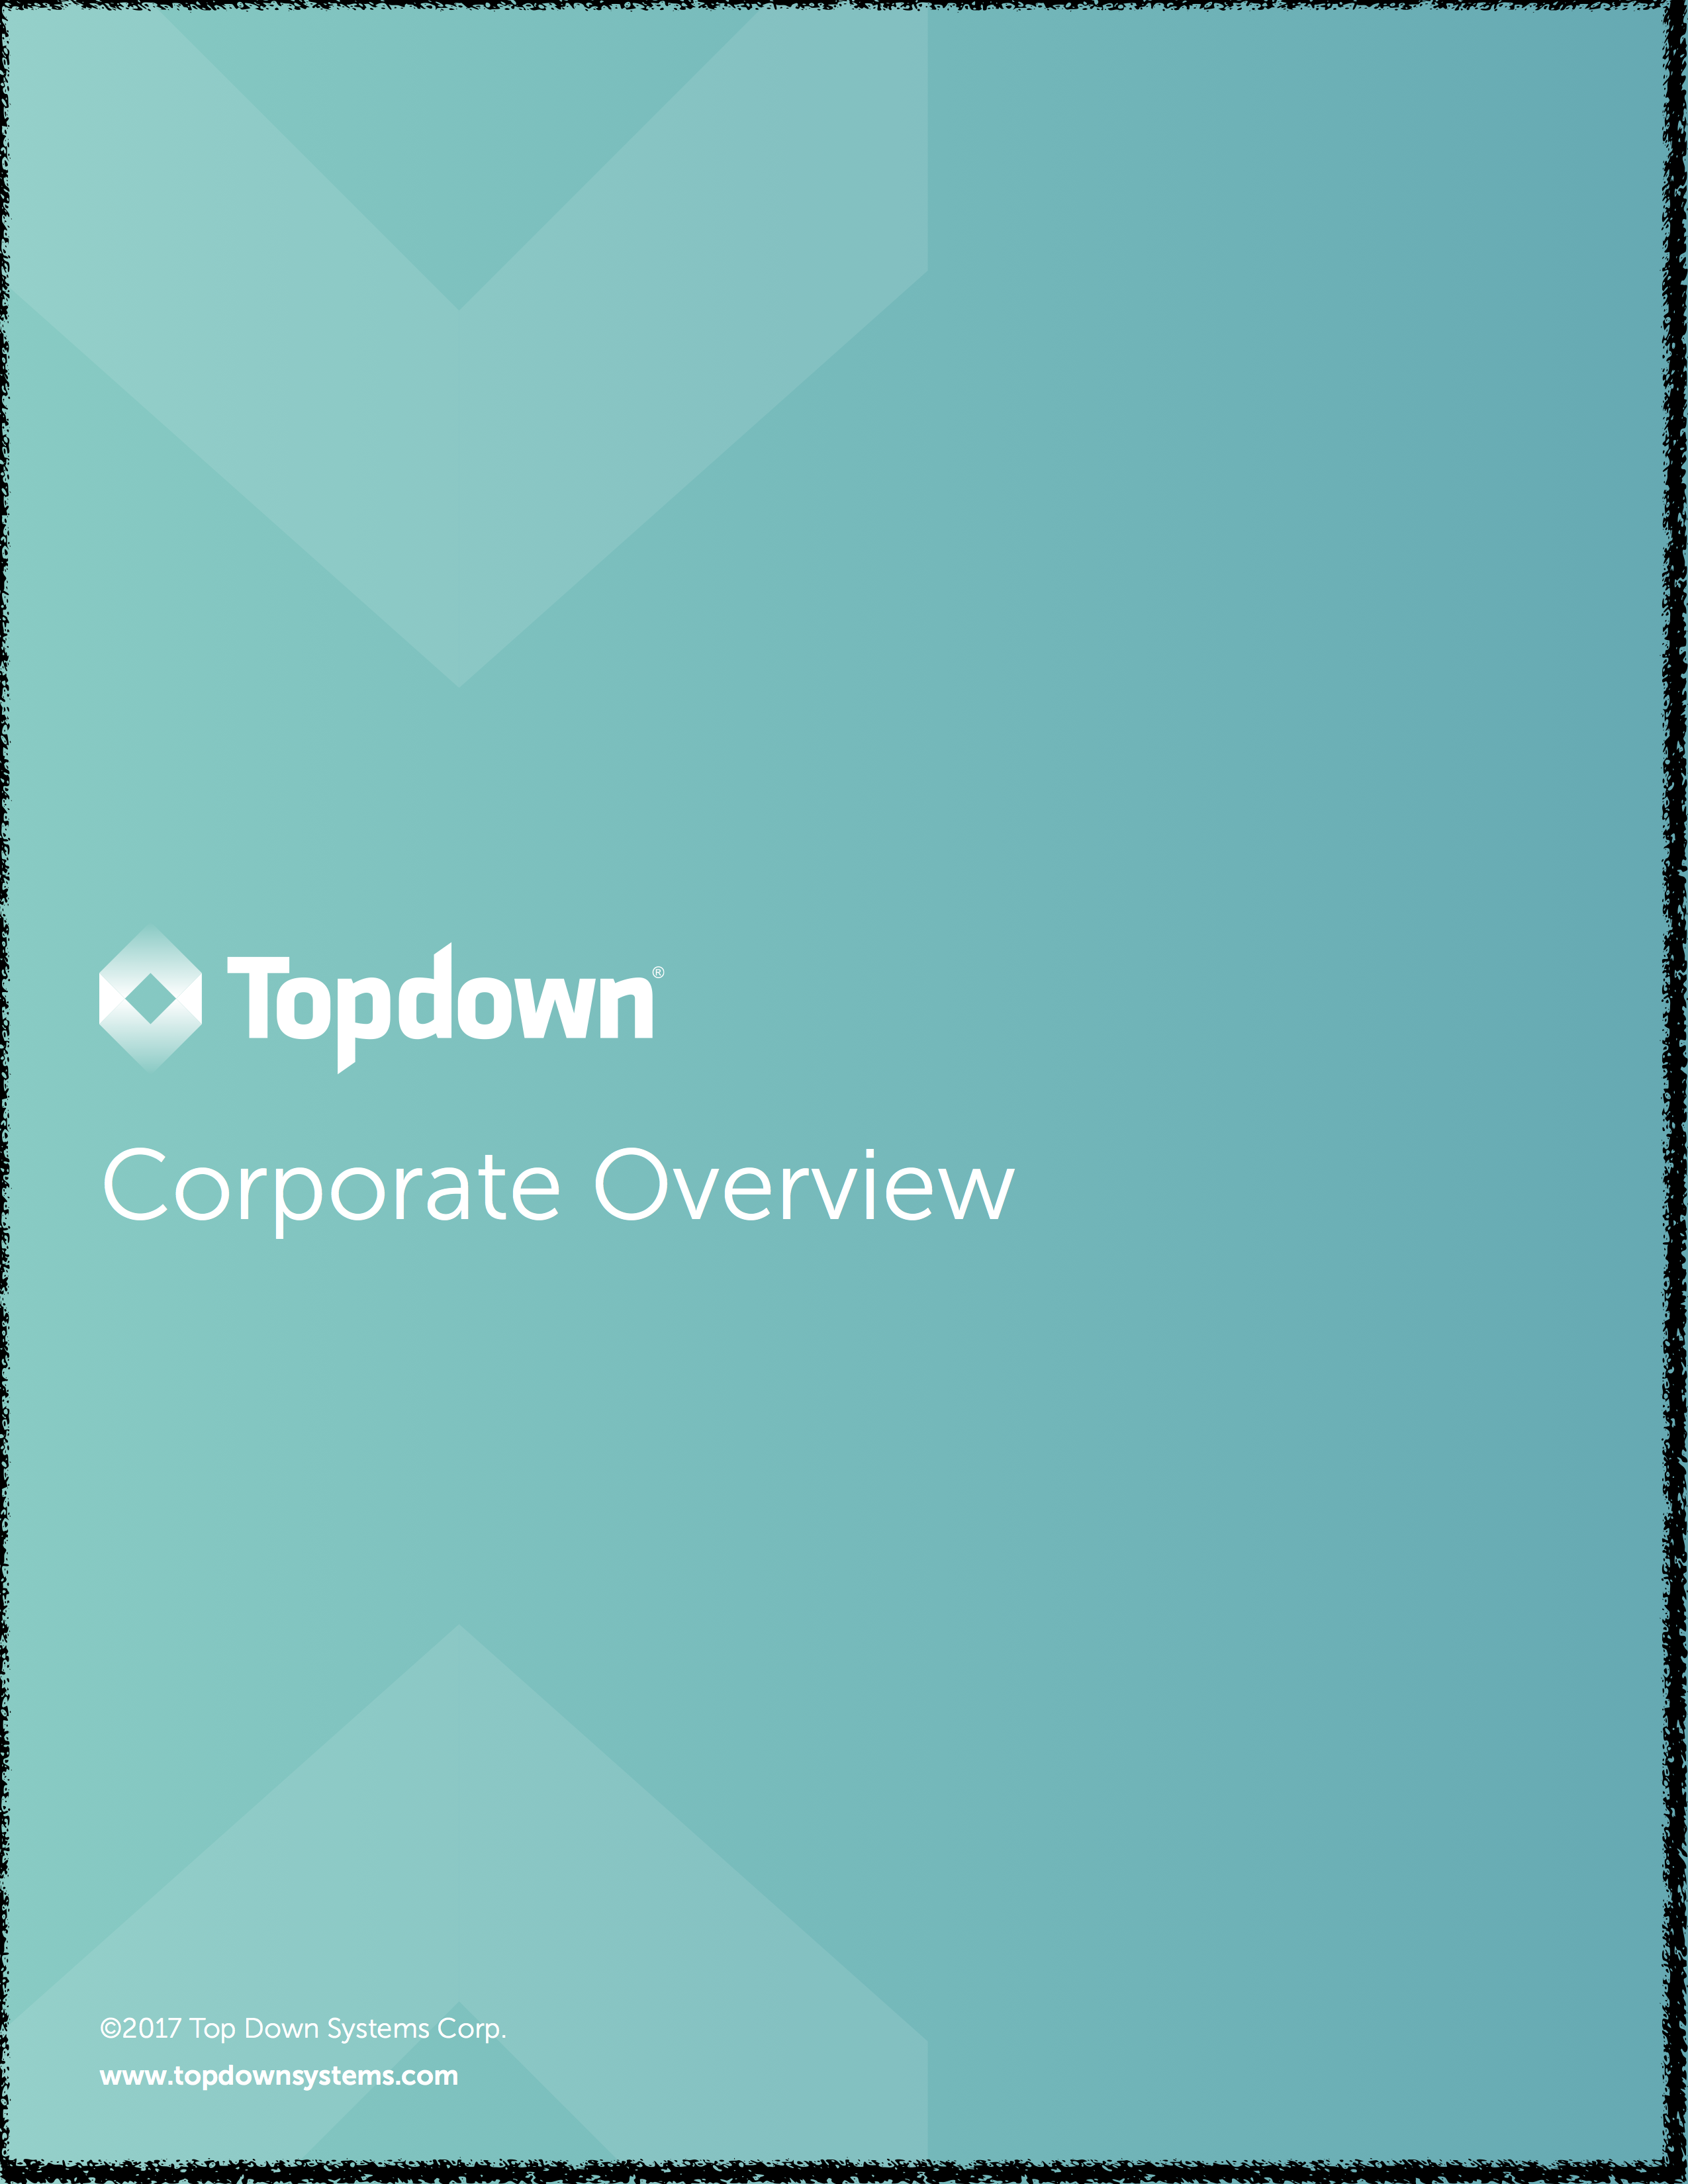 Topdown corporate overview